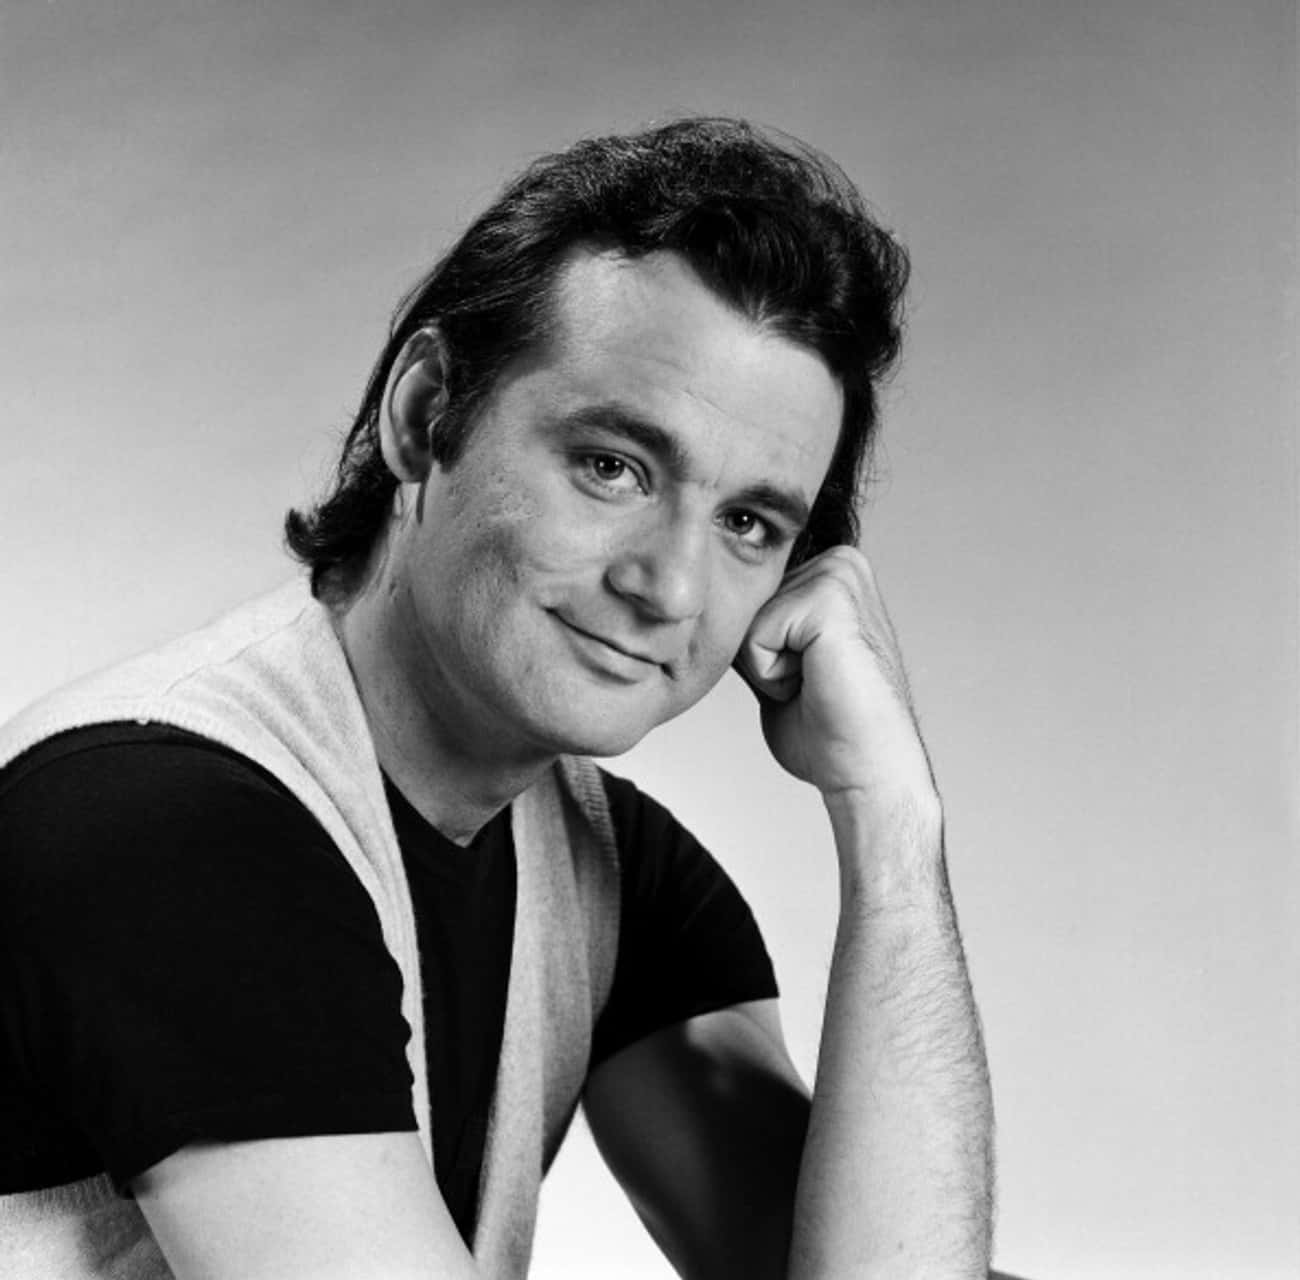 Young Bill Murray in a Black T is listed (or ranked) 4 on the list 12 Pictures of Young Bill Murray